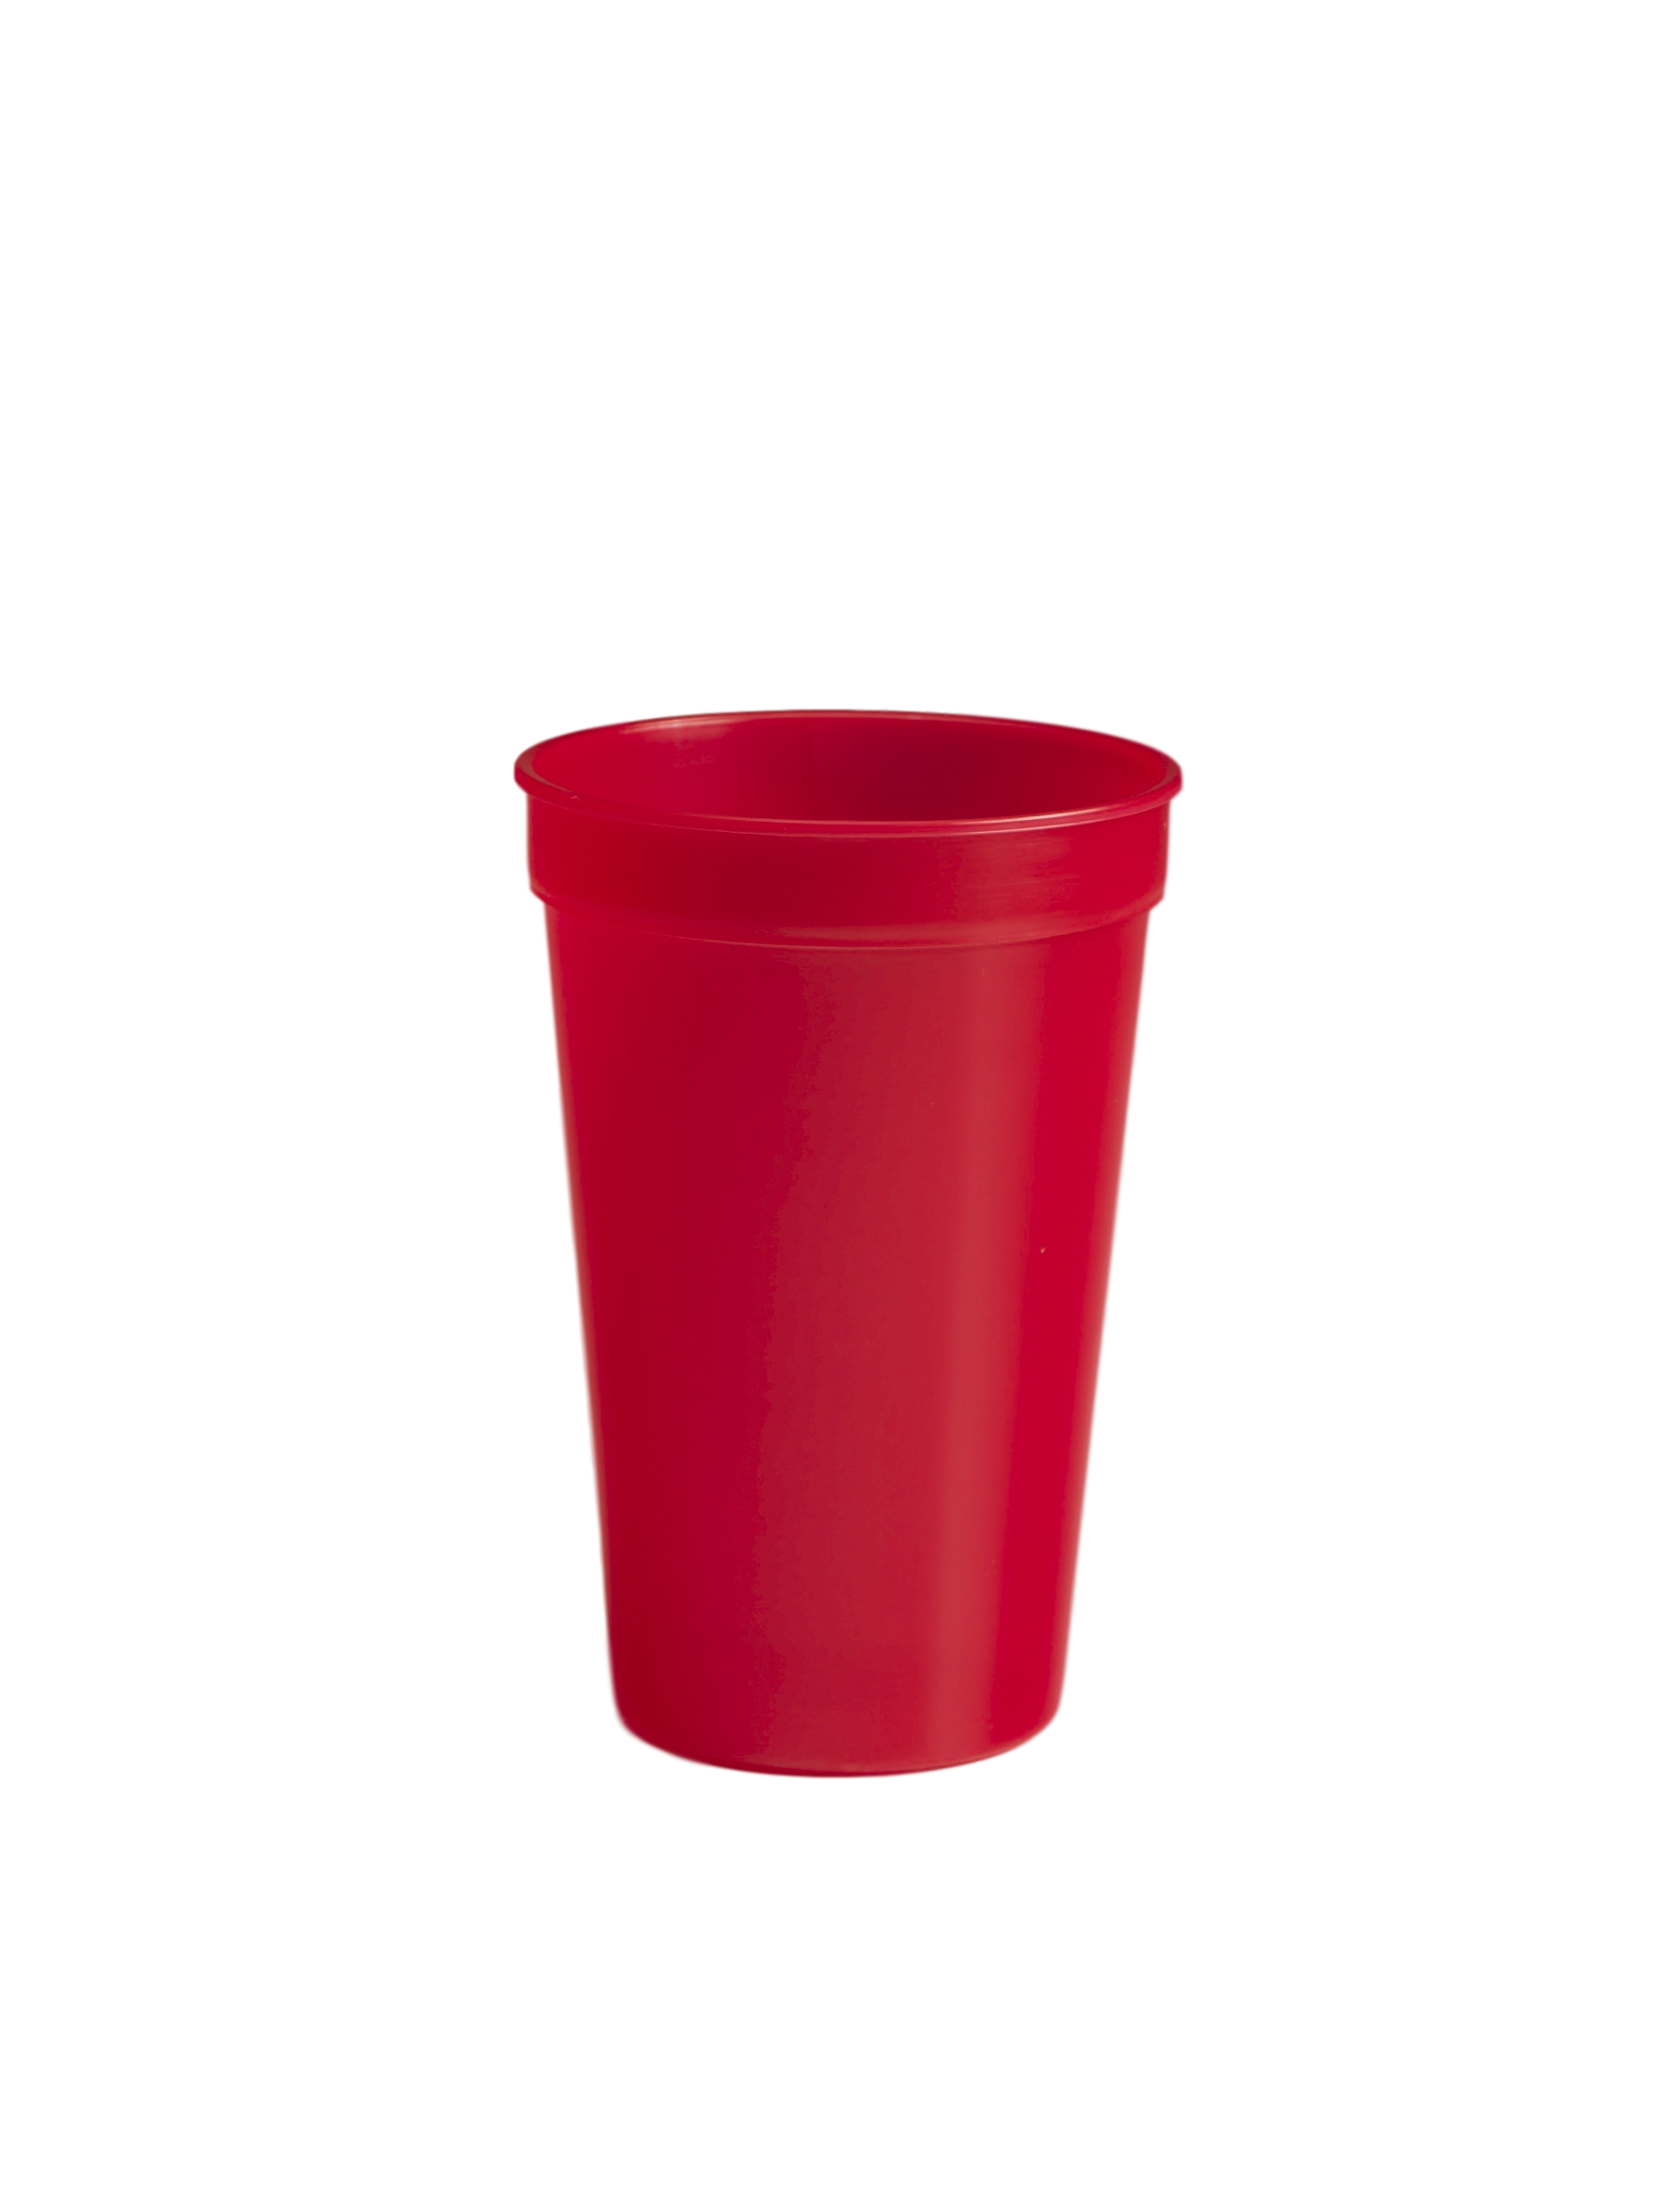 Red Solo Cup Vector